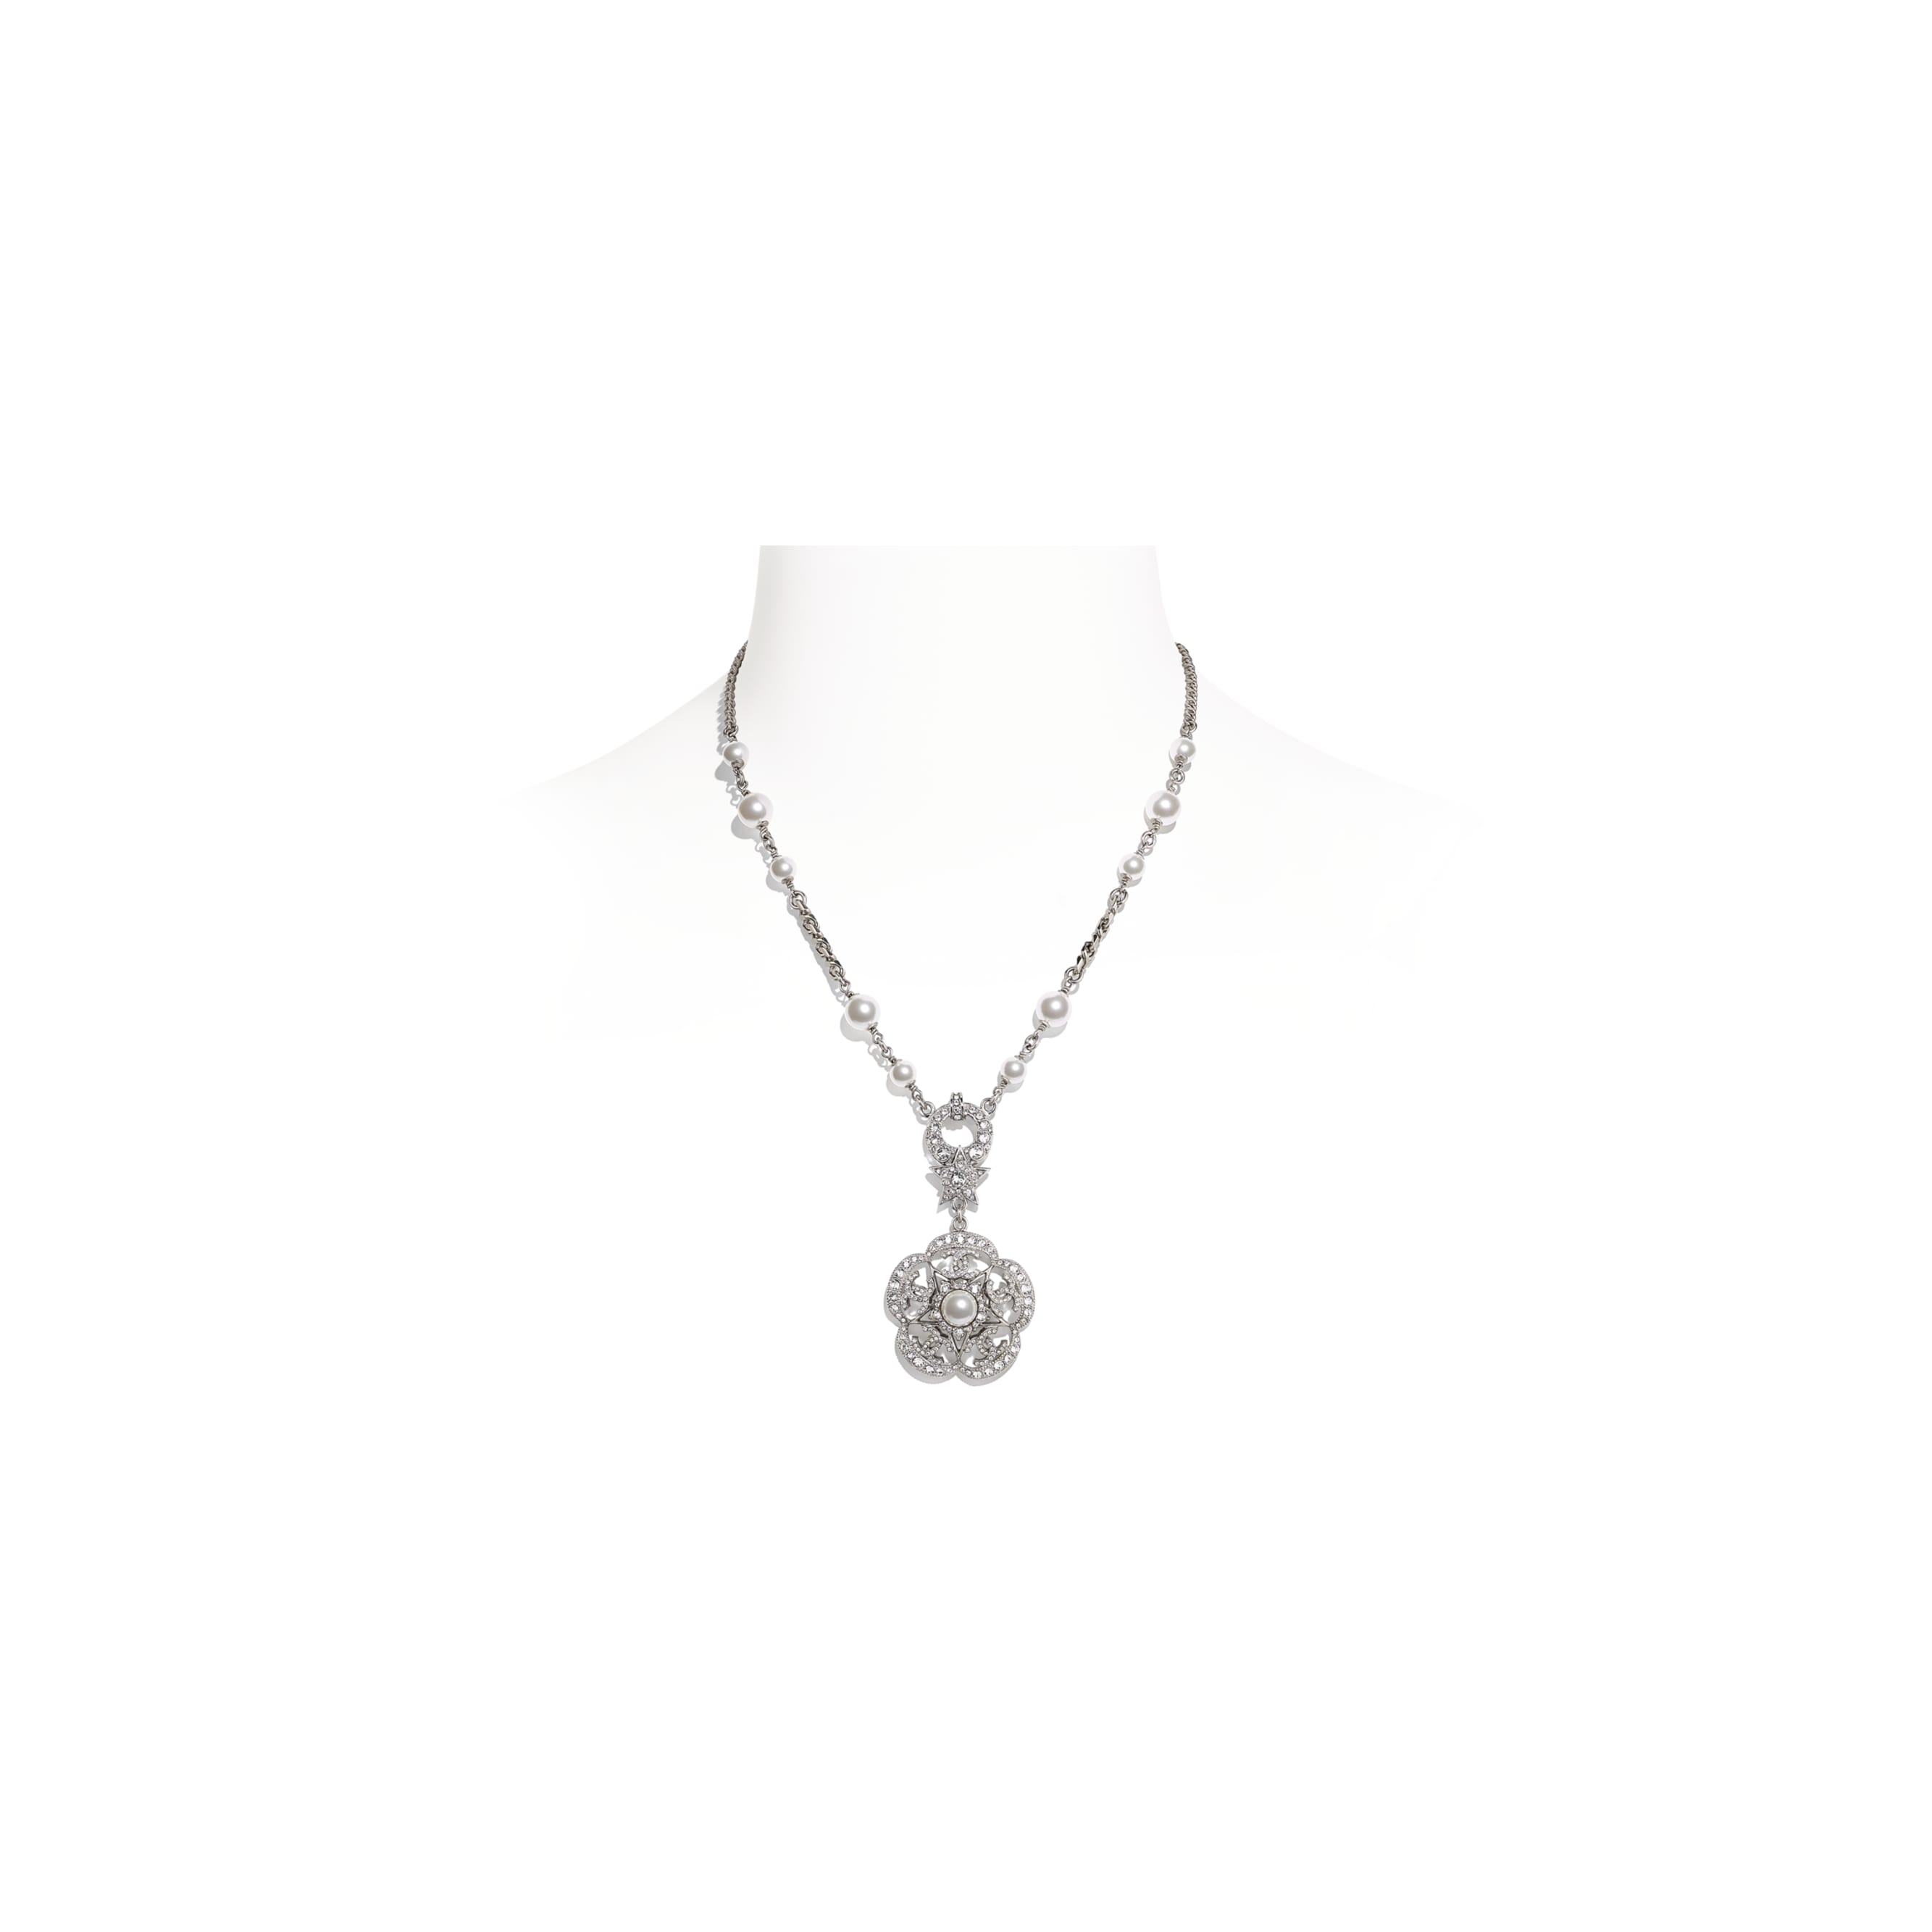 Necklace - Silver, Pearly White & Crystal - Metal, Glass Pearls & Diamantés - CHANEL - Default view - see standard sized version